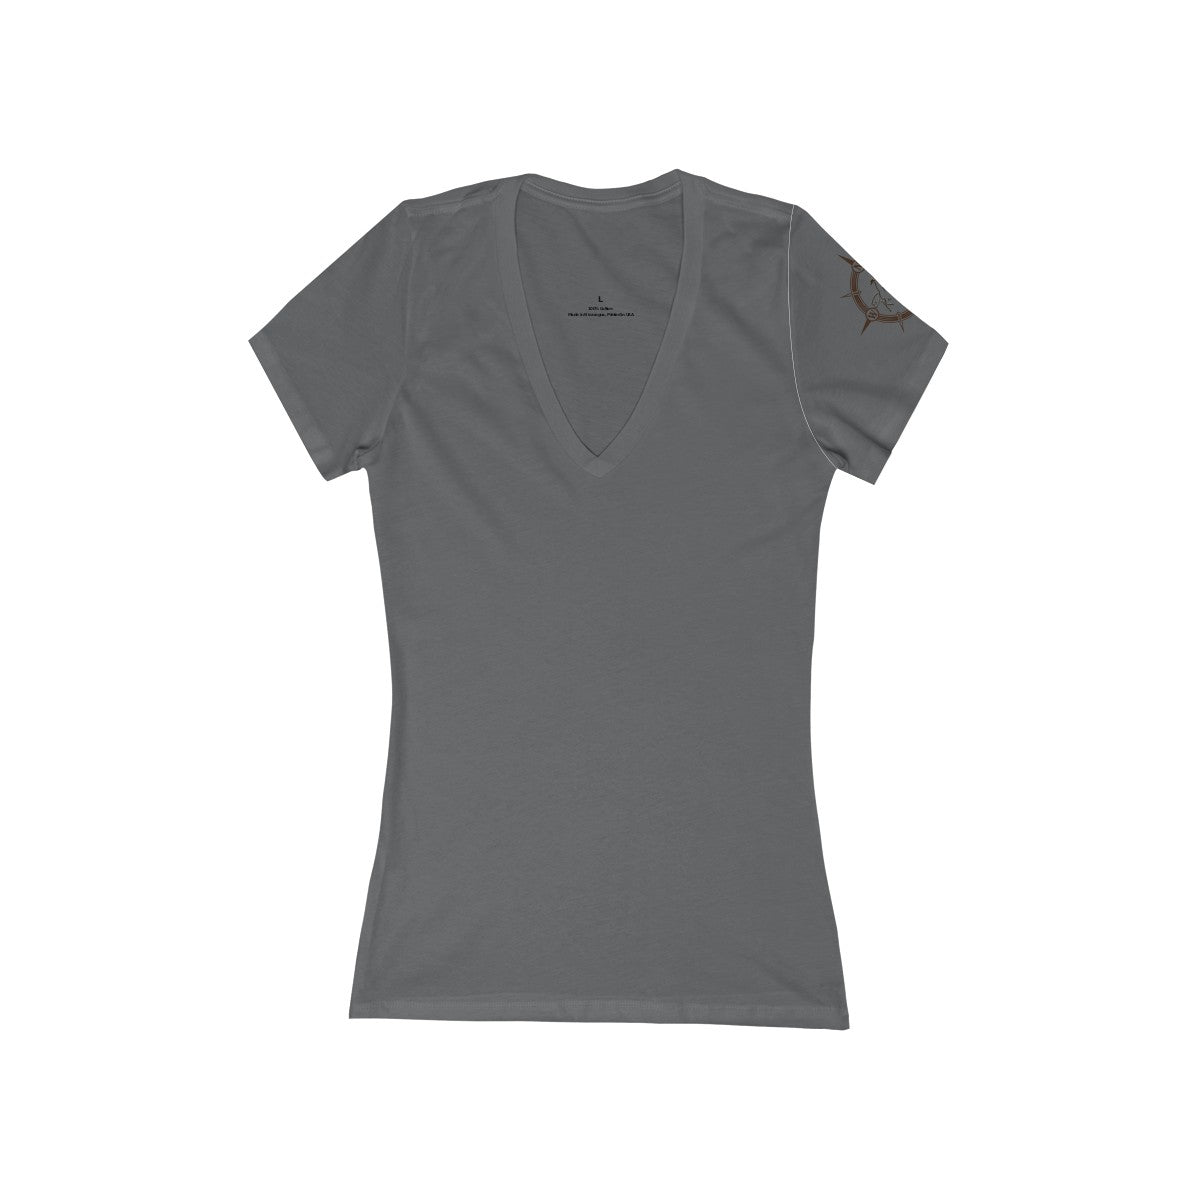 Cowboy Dressage Women's Jersey Short Sleeve Deep V-Neck Tee Arm Logo